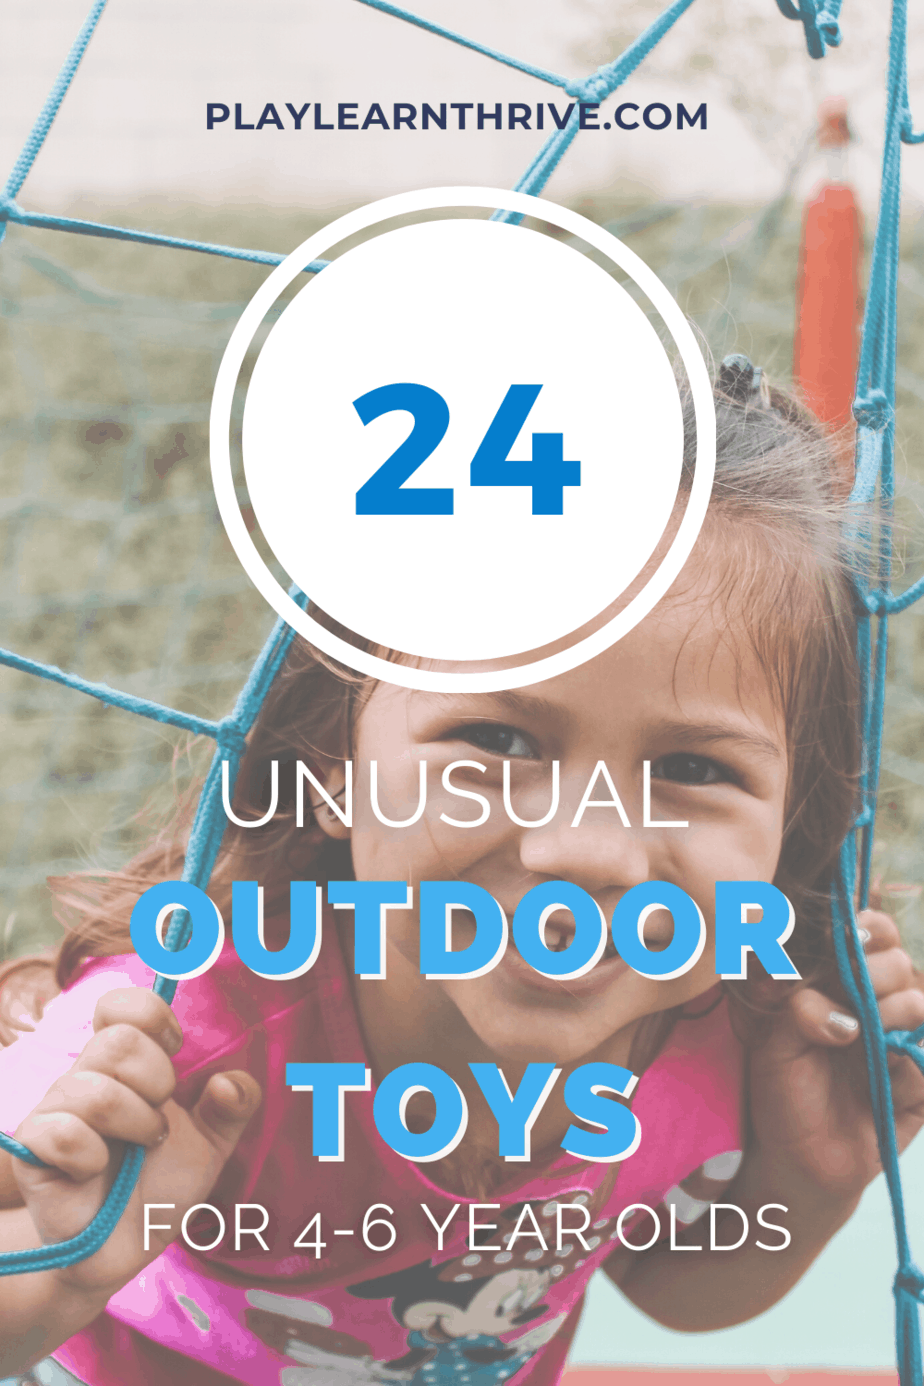 Young girl hanging from a rope climber with the phrase 24 unusual outdoor toys for kids ages 4-6.